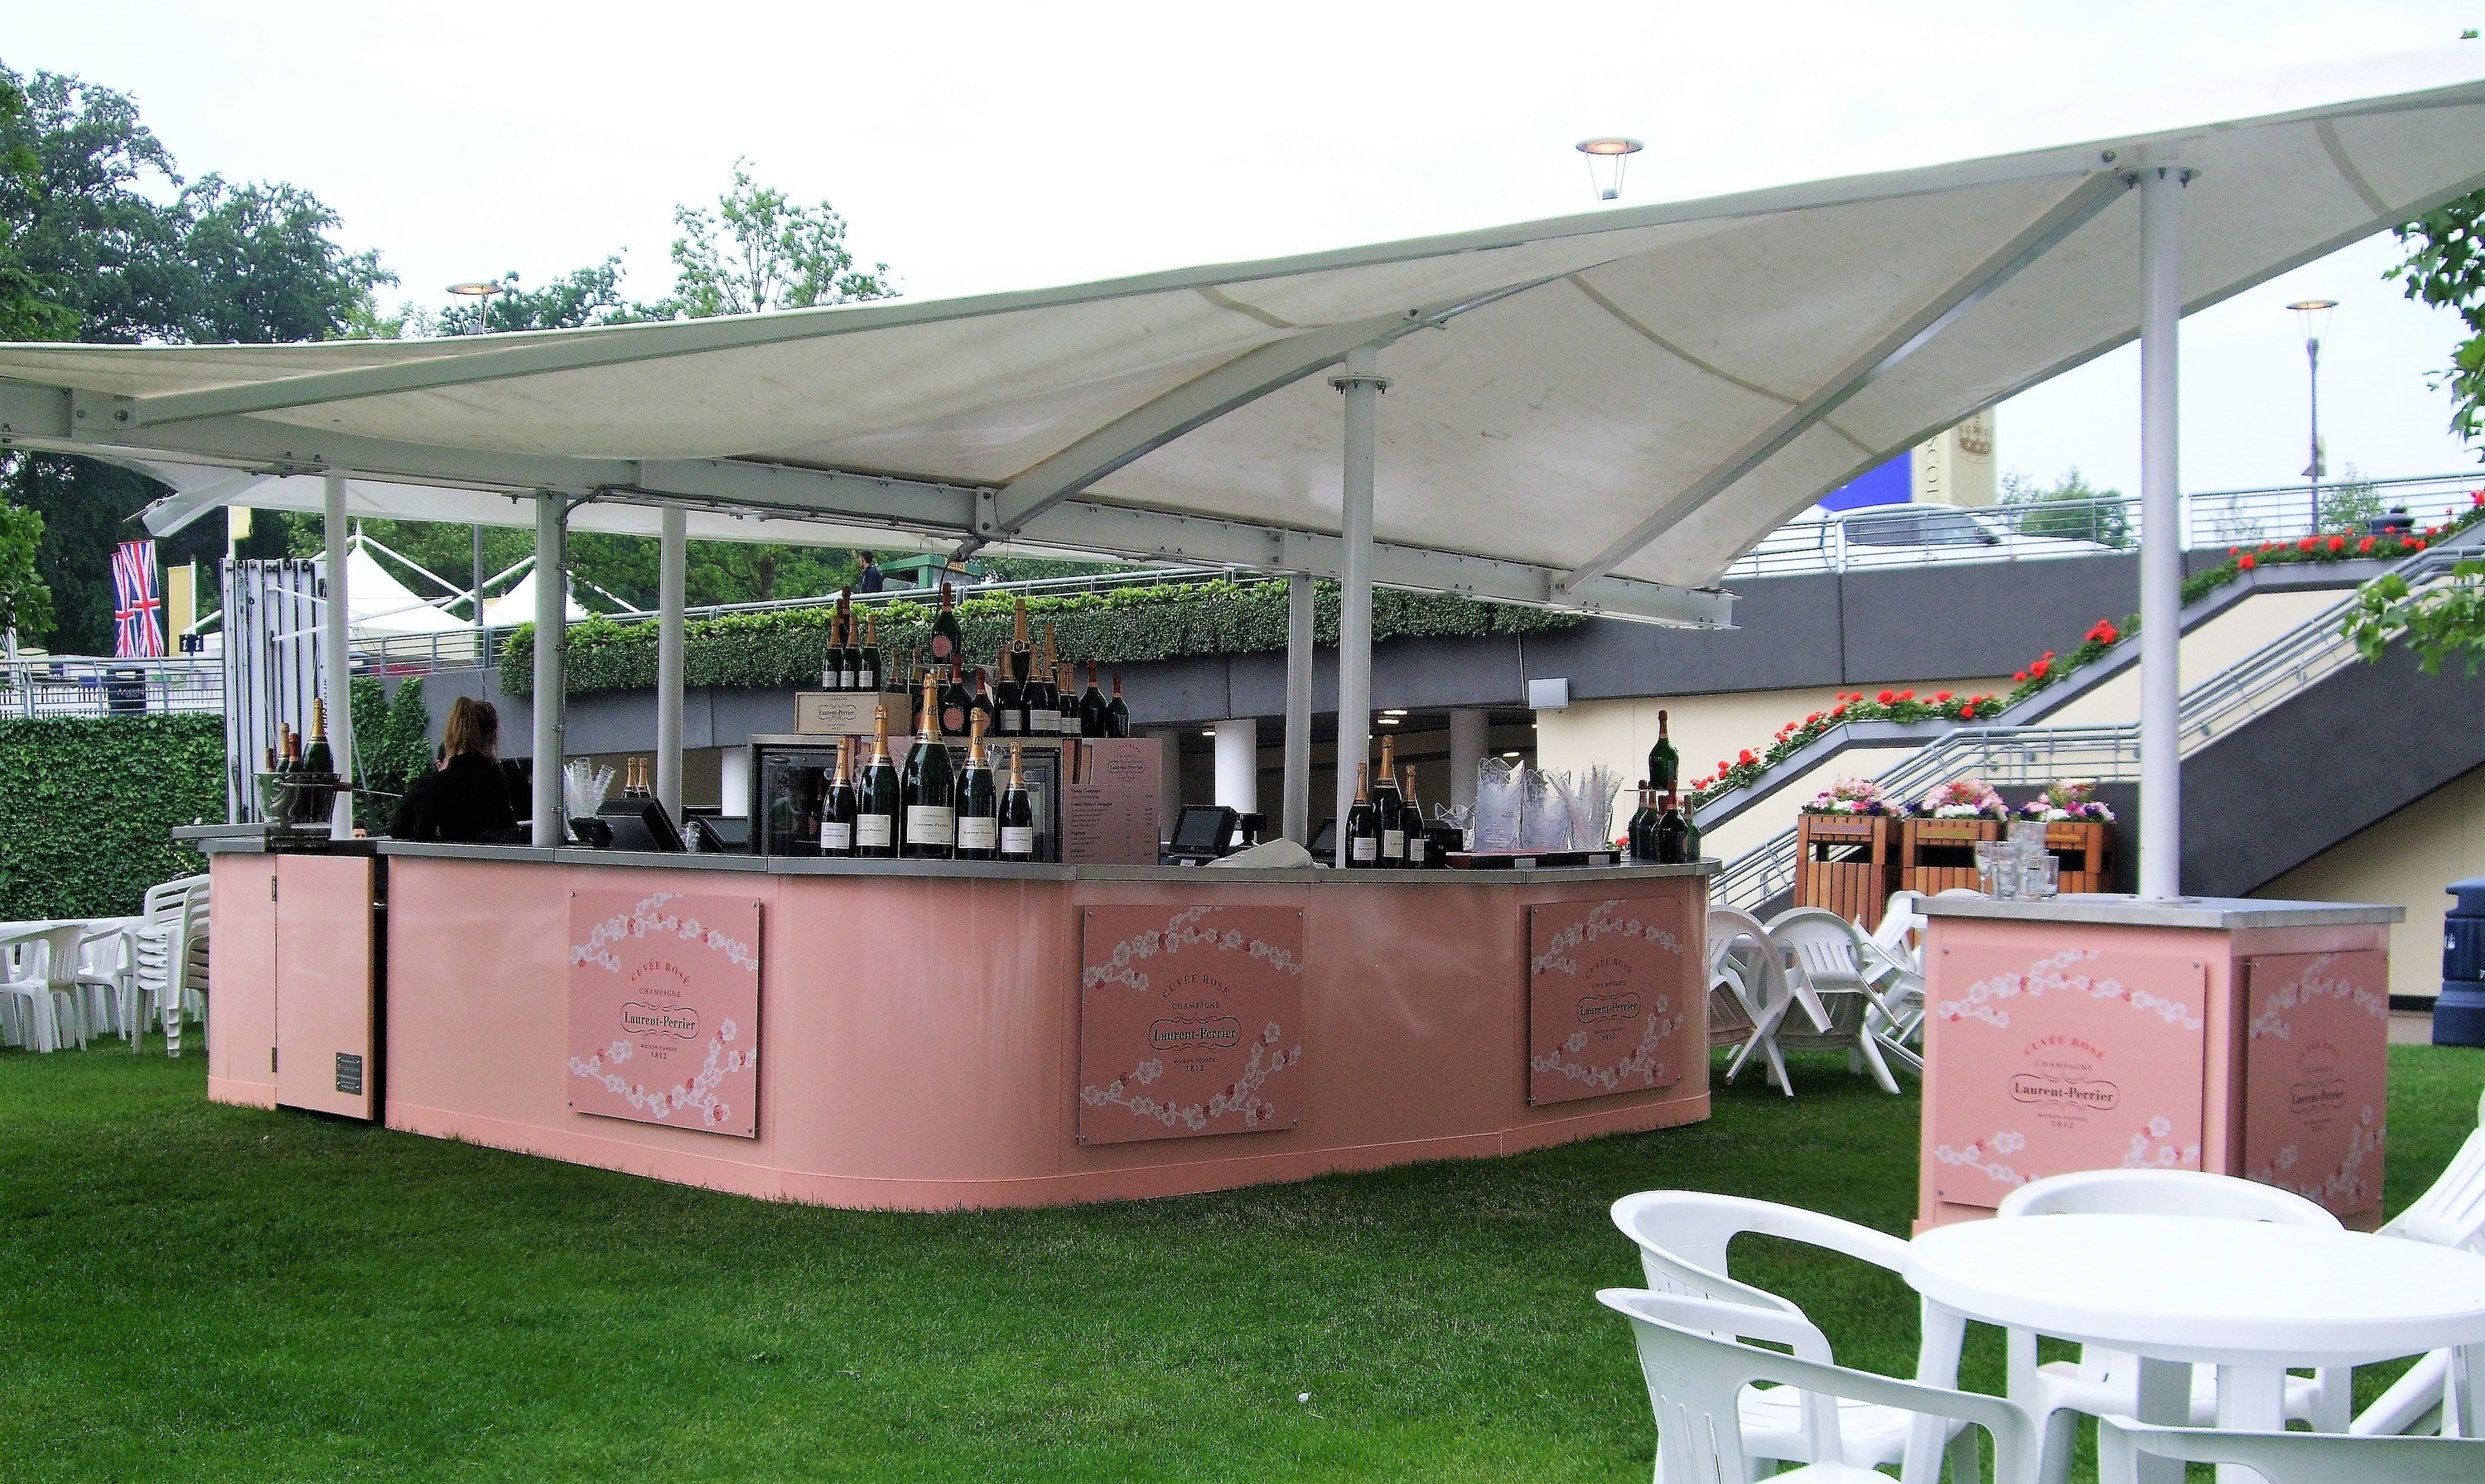 <p>Event, Mobile & Stadia Bars – Sail & Canopy Bar.</p> <p> </p> <p>Elegant Laurent Perrier Champagne Bar.</p> <p> </p> <p>Ideally suited as a focal point outdoor event bar serving premium champagne or other premium drinks brands at high profile sporting events including Royal Ascot, Cricket at Lords, Goodwood Revival etc.</p> <p> </p> <p>Bespoke Design and Manufacture in UK to meet customer individual requirements</p>